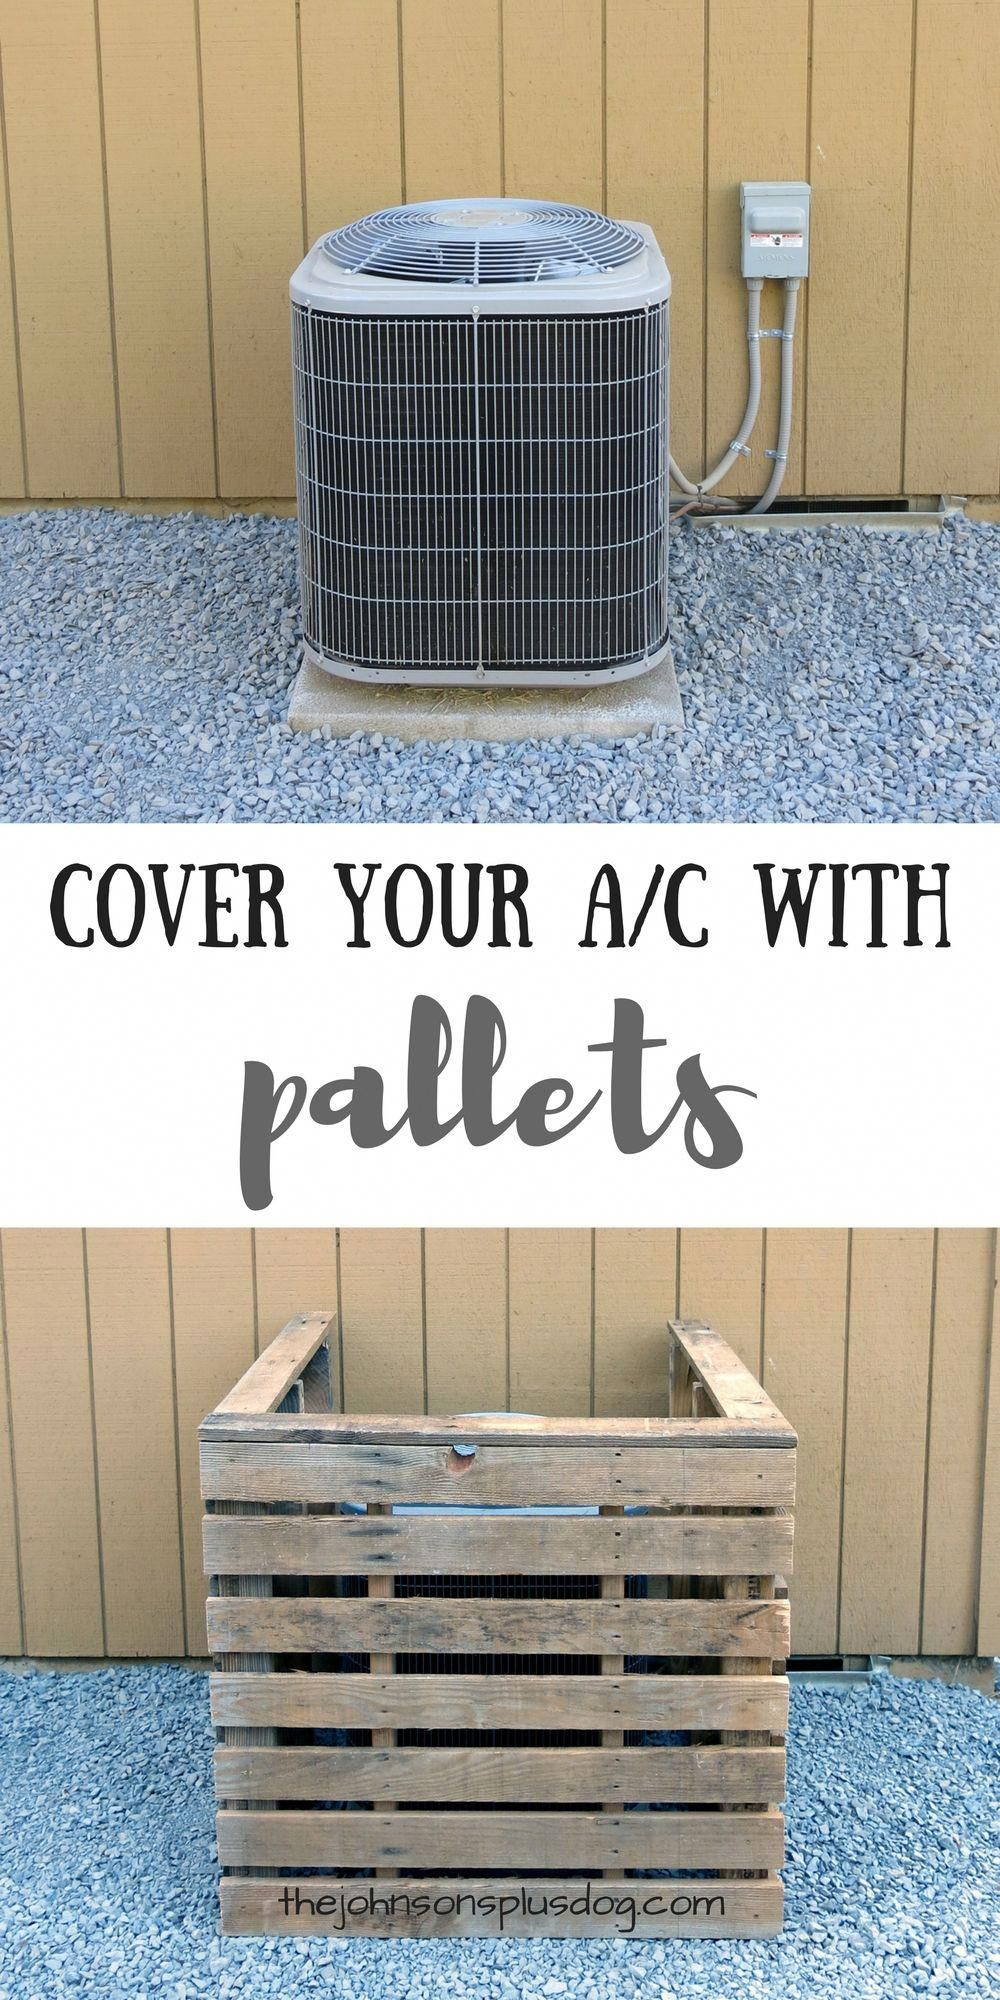 DIY Pallet AC Cover Pallet Wood A/C Cover Air